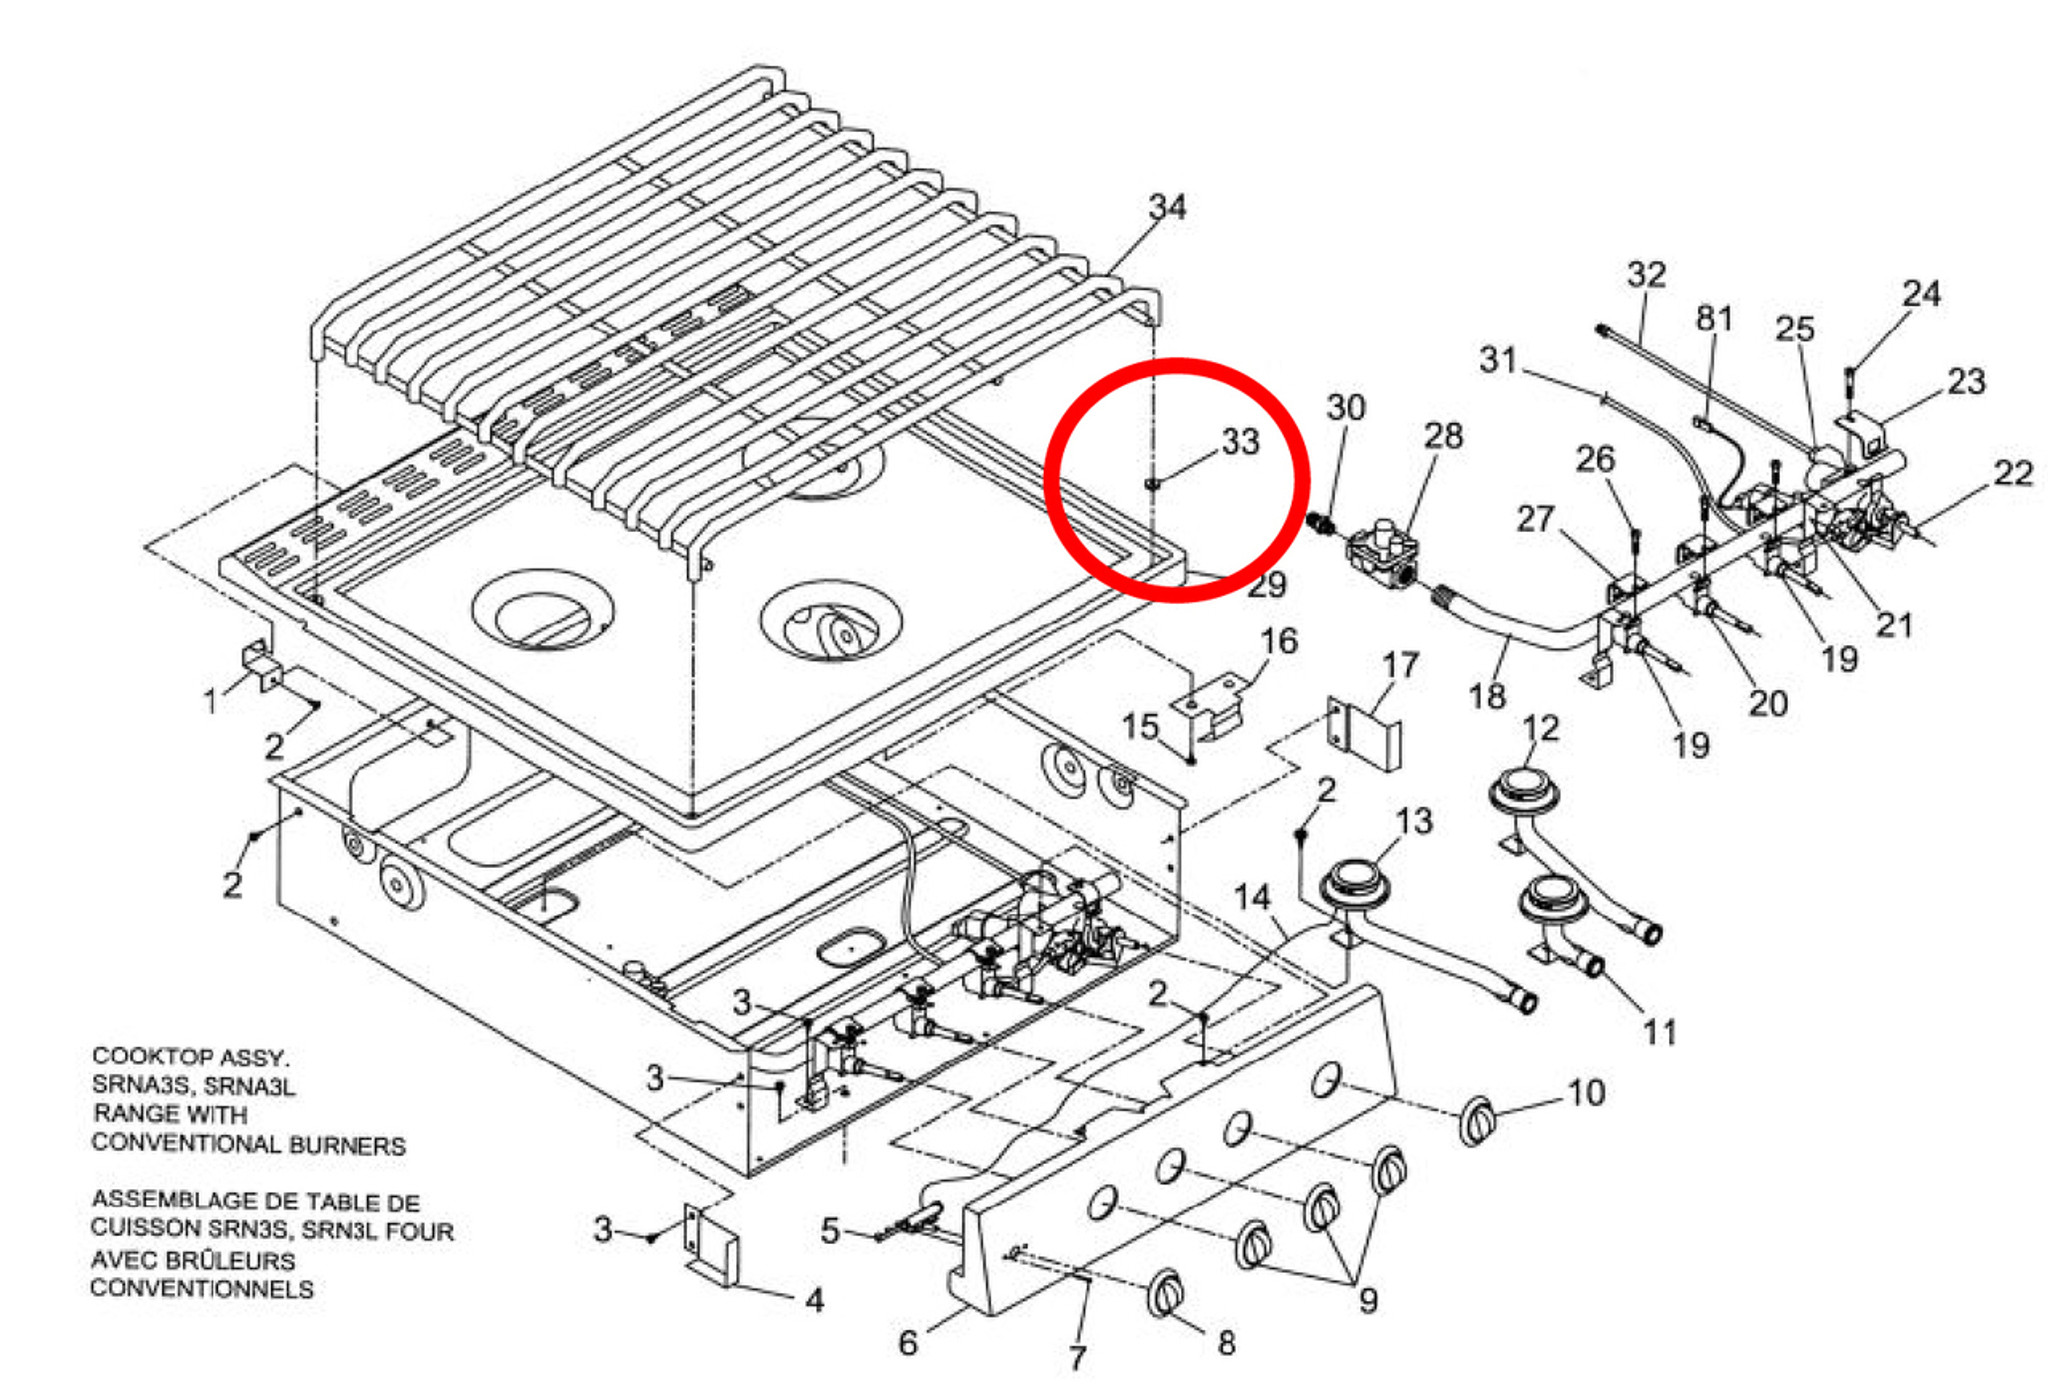 hight resolution of suburban stove grate grommet 071129 fits most models suburban rv rv stove diagram